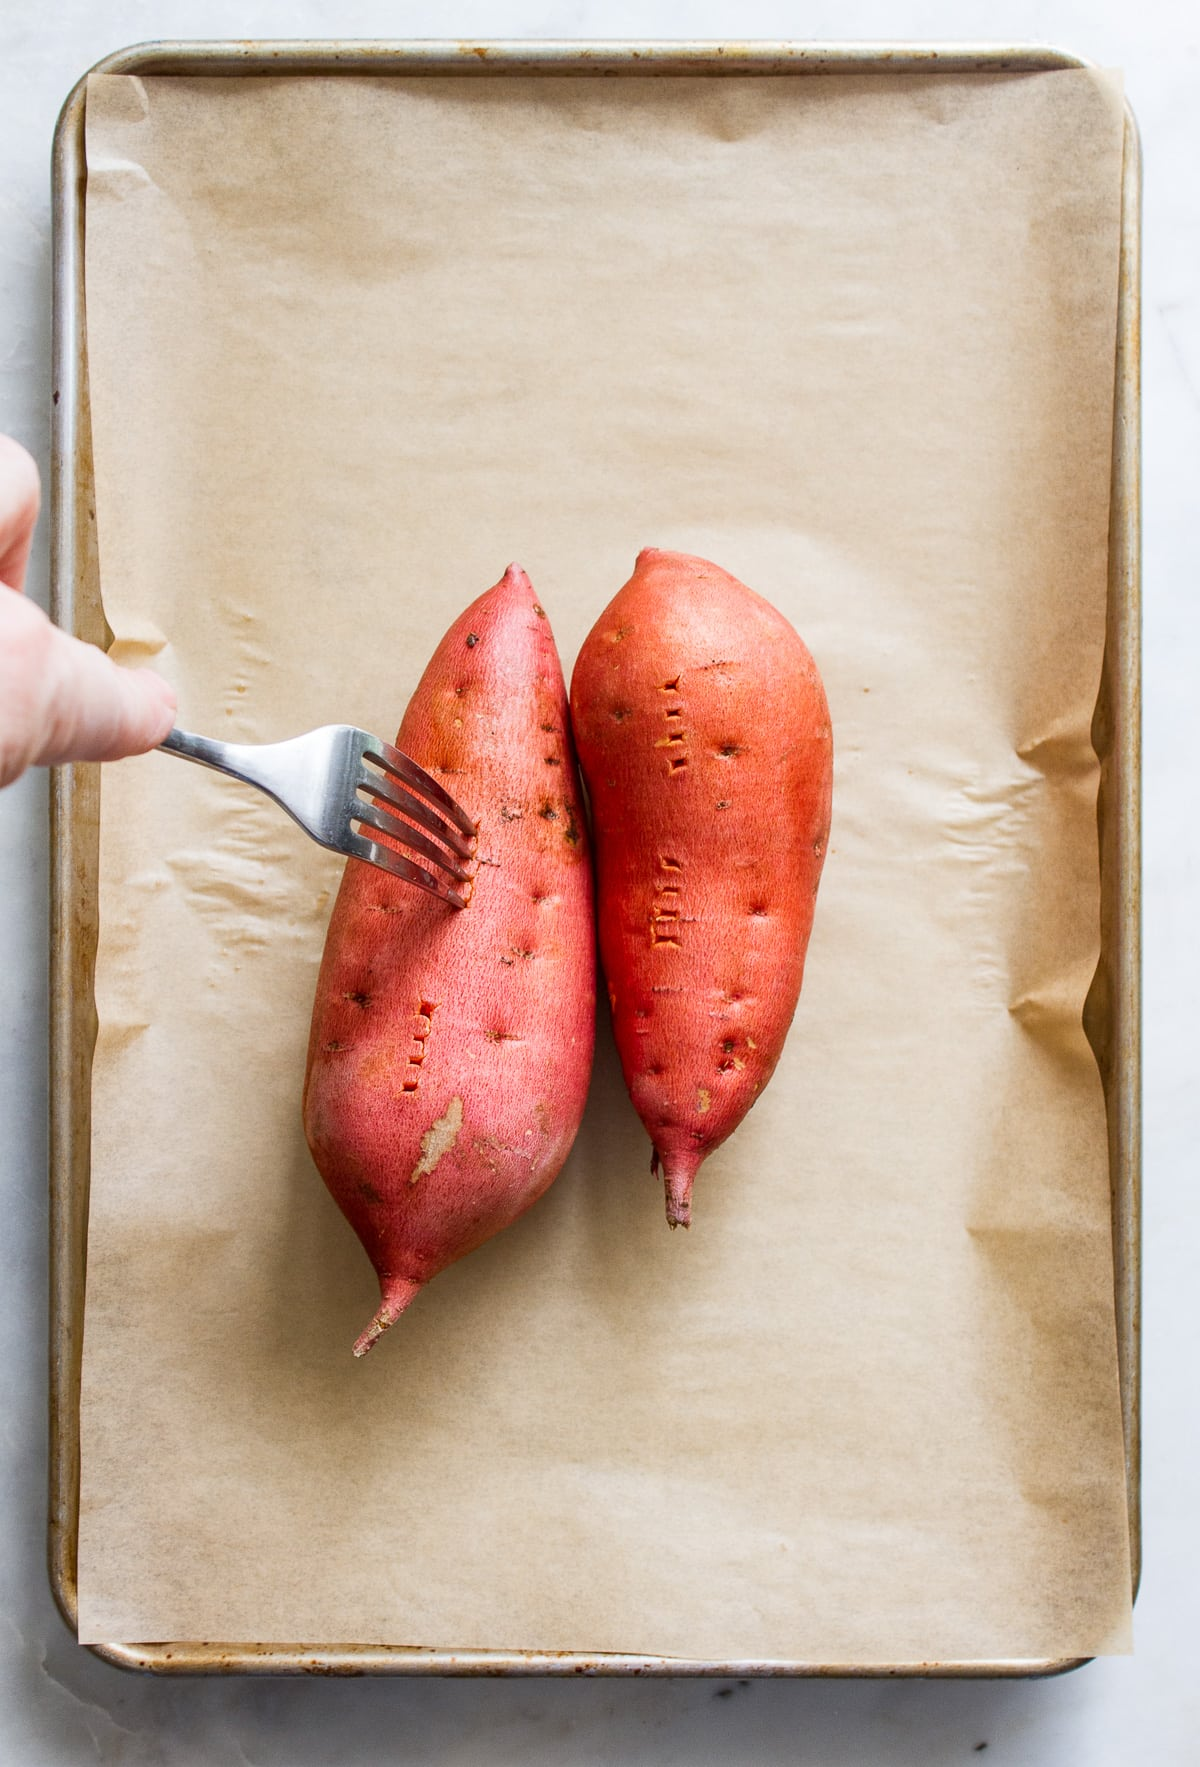 top down view of 2 sweet potatoes on a rimmed baking sheet with holes poked using a fork.